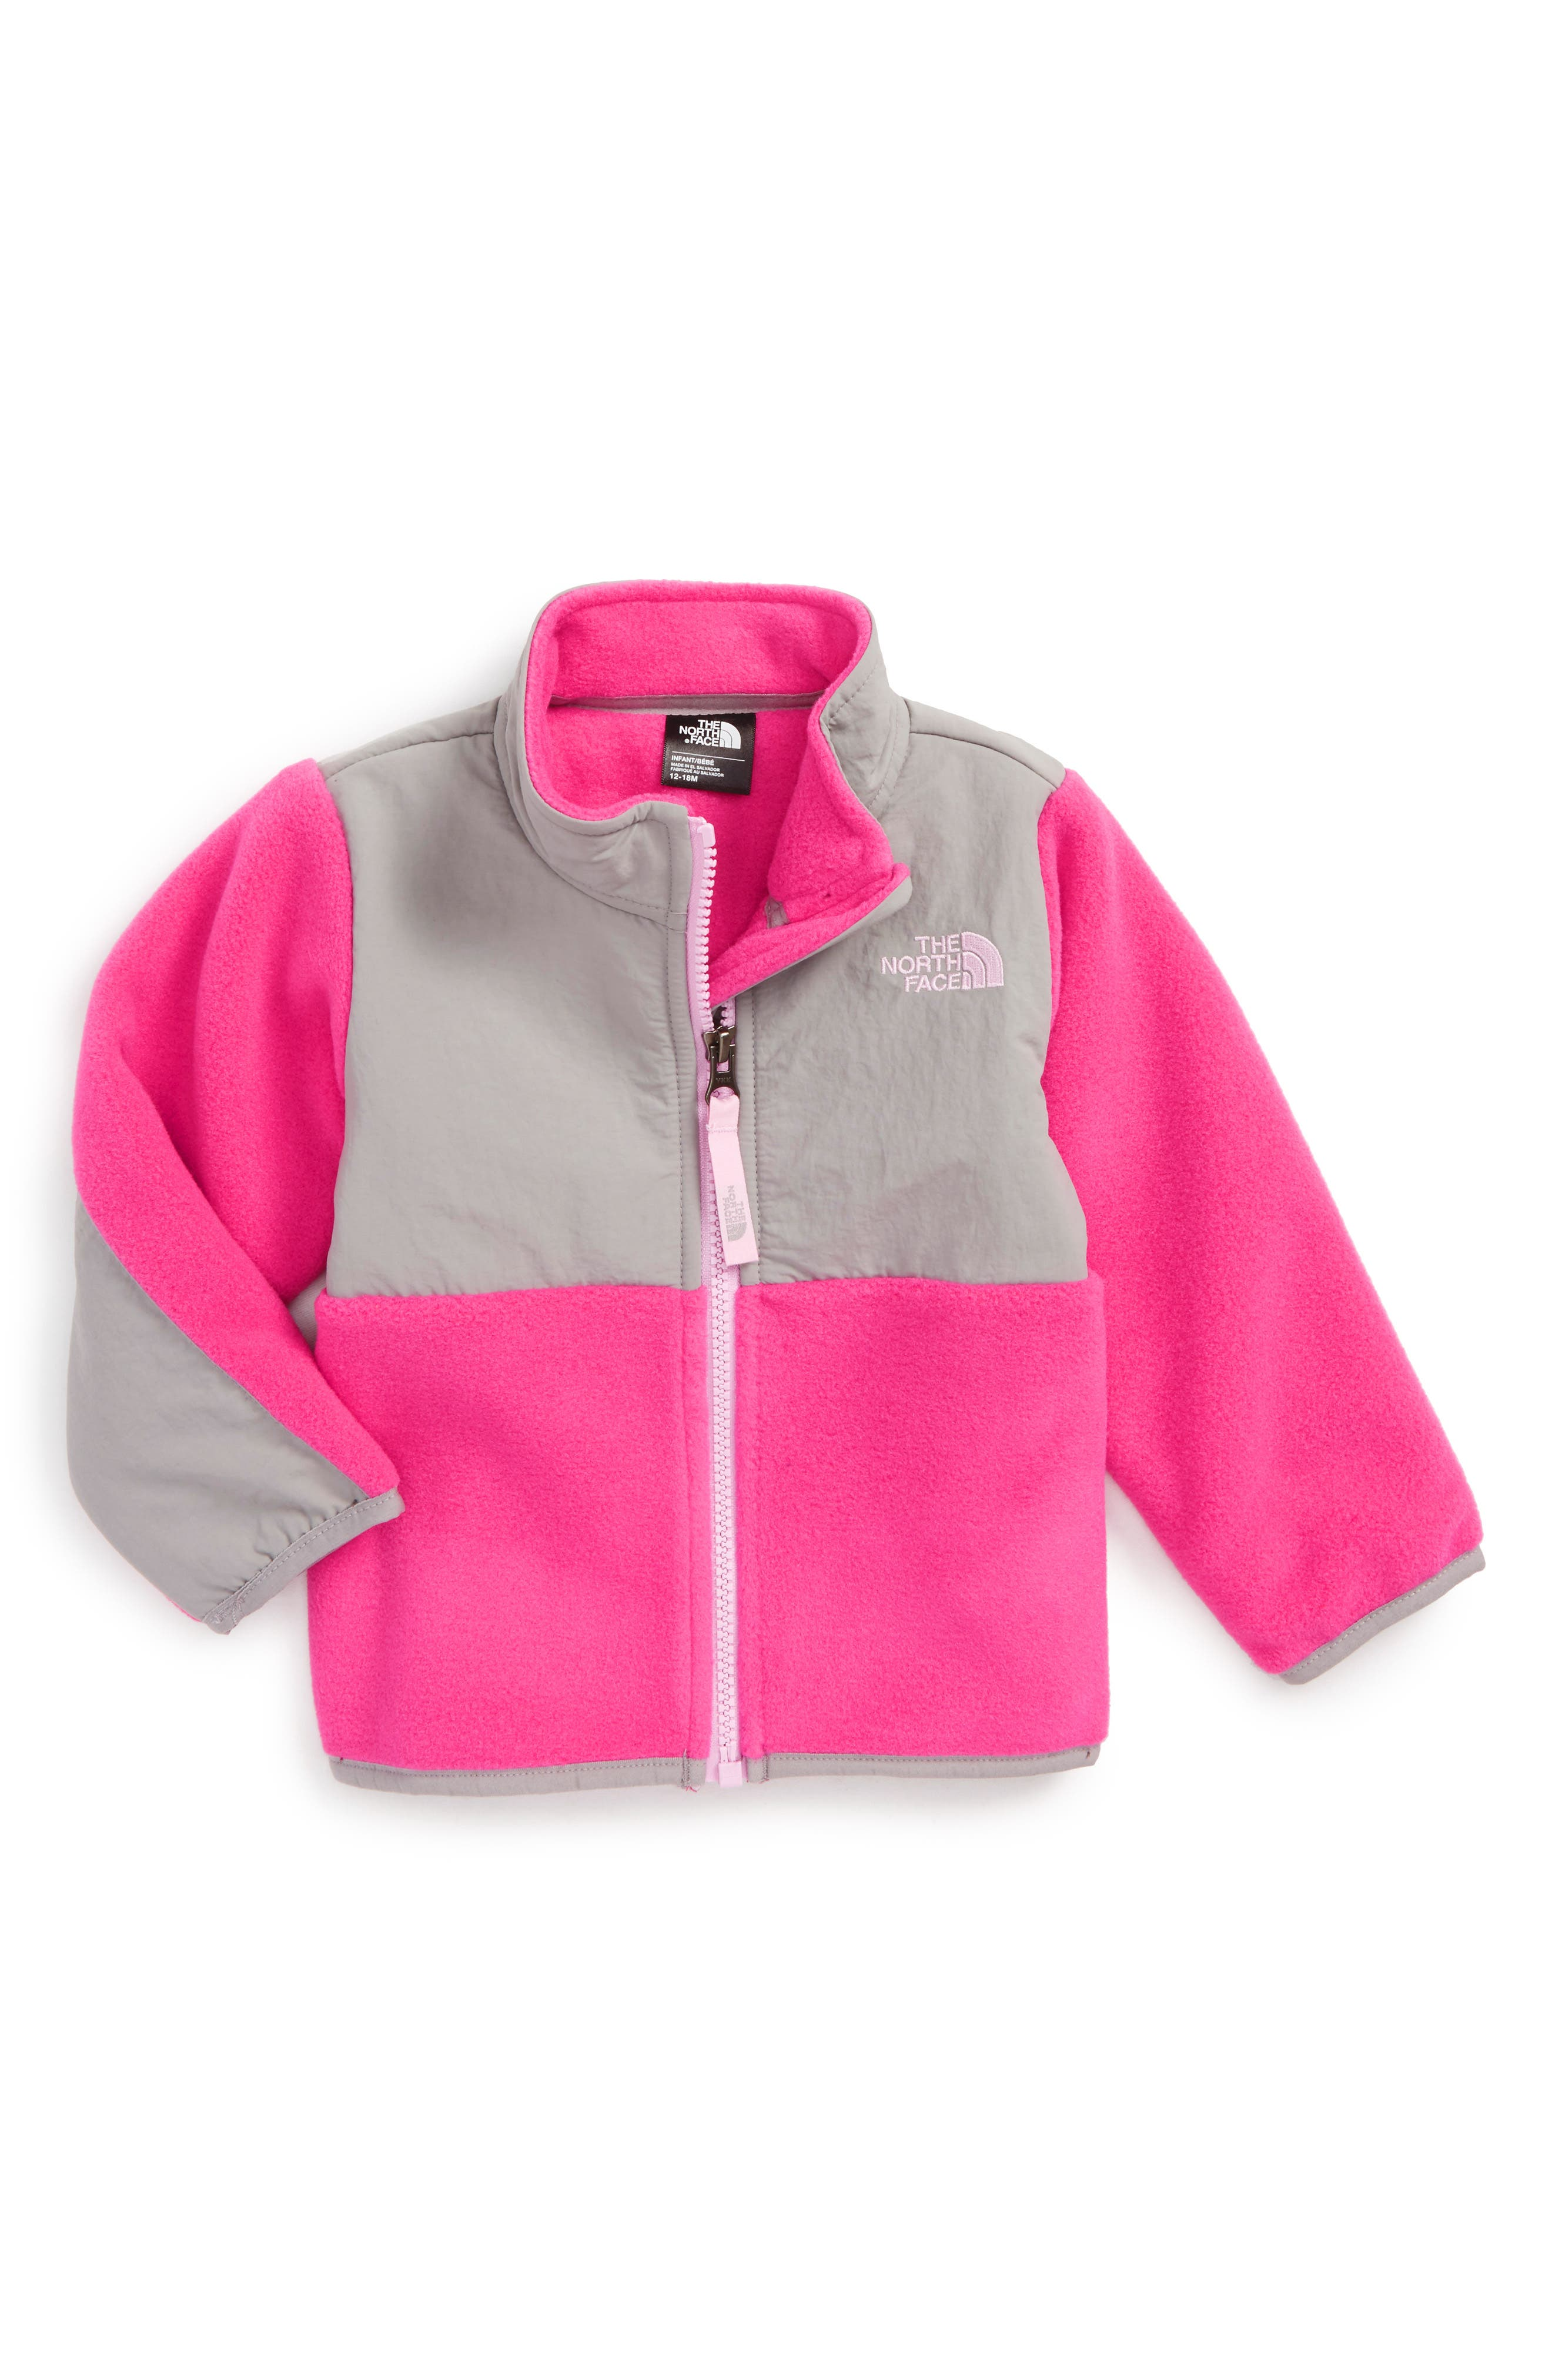 Main Image - The North Face 'Denali' Recycled Fleece Jacket (Baby Girls)